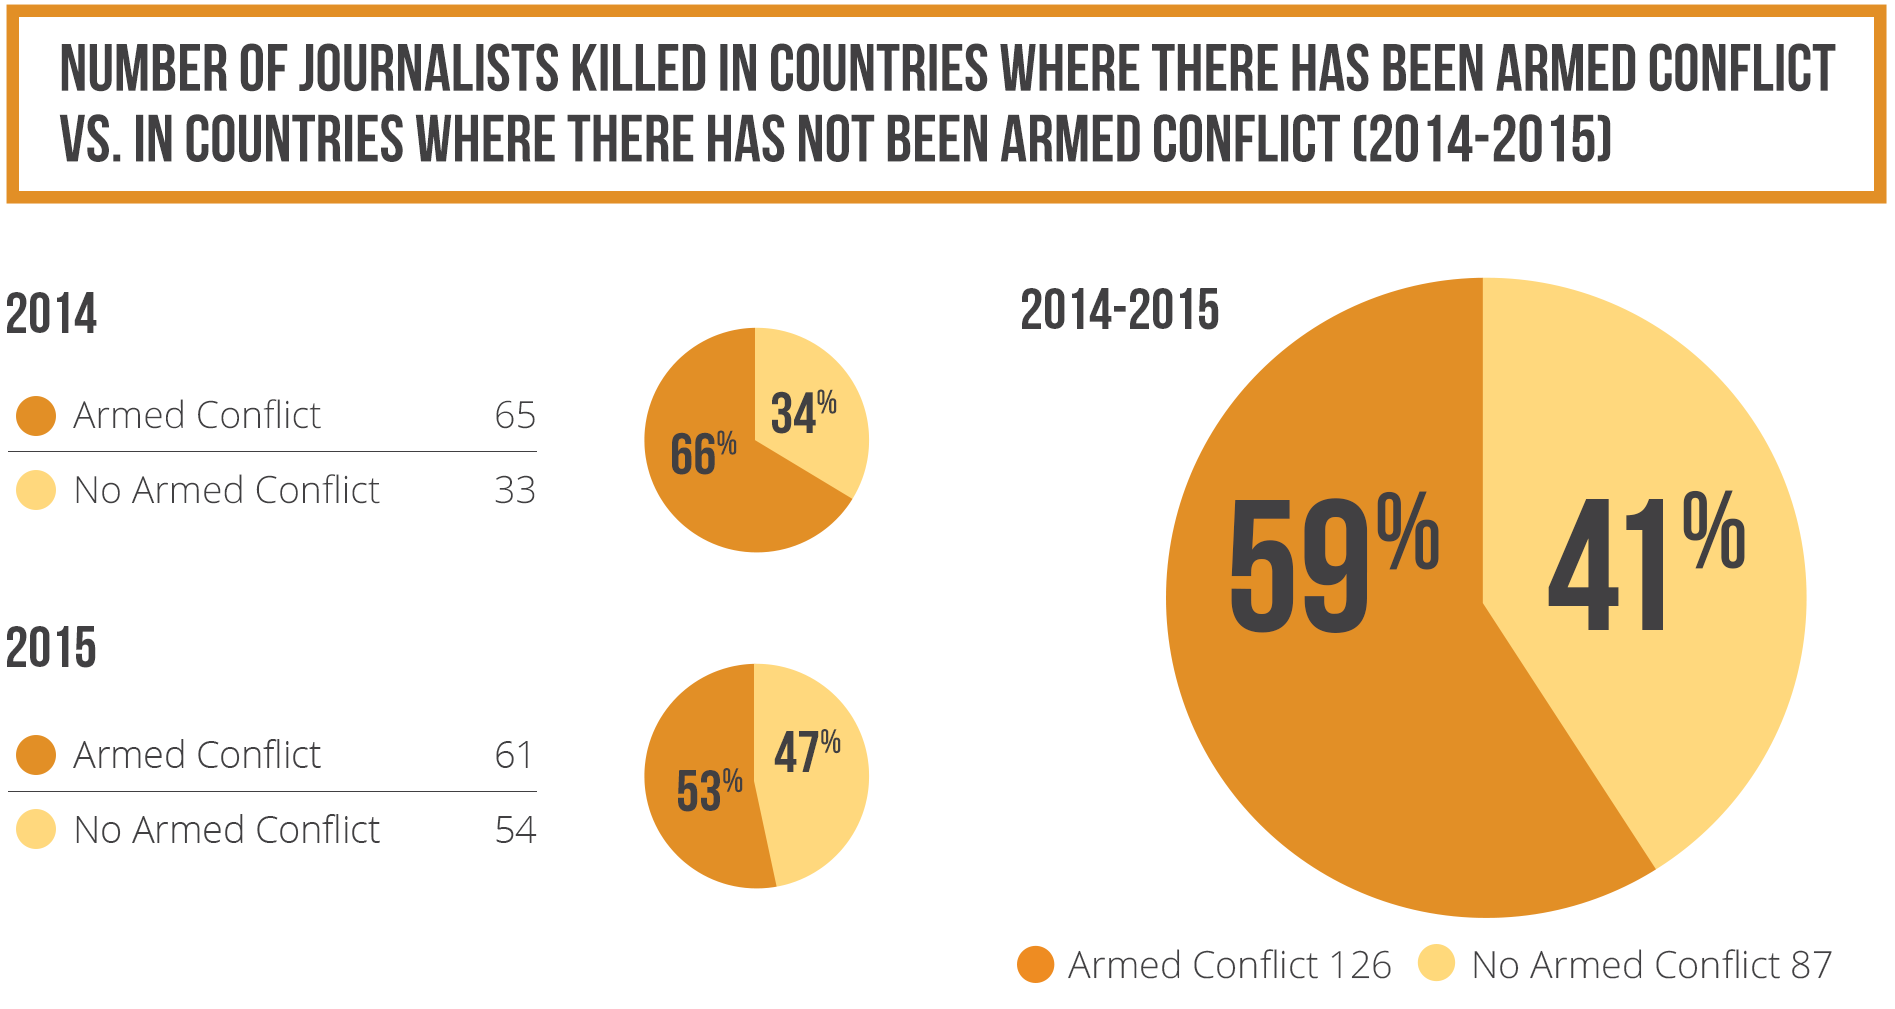 Number of journalists killed in countries where there has been armed conflict vs. in countries where there has not been armed conflict 2014-2015